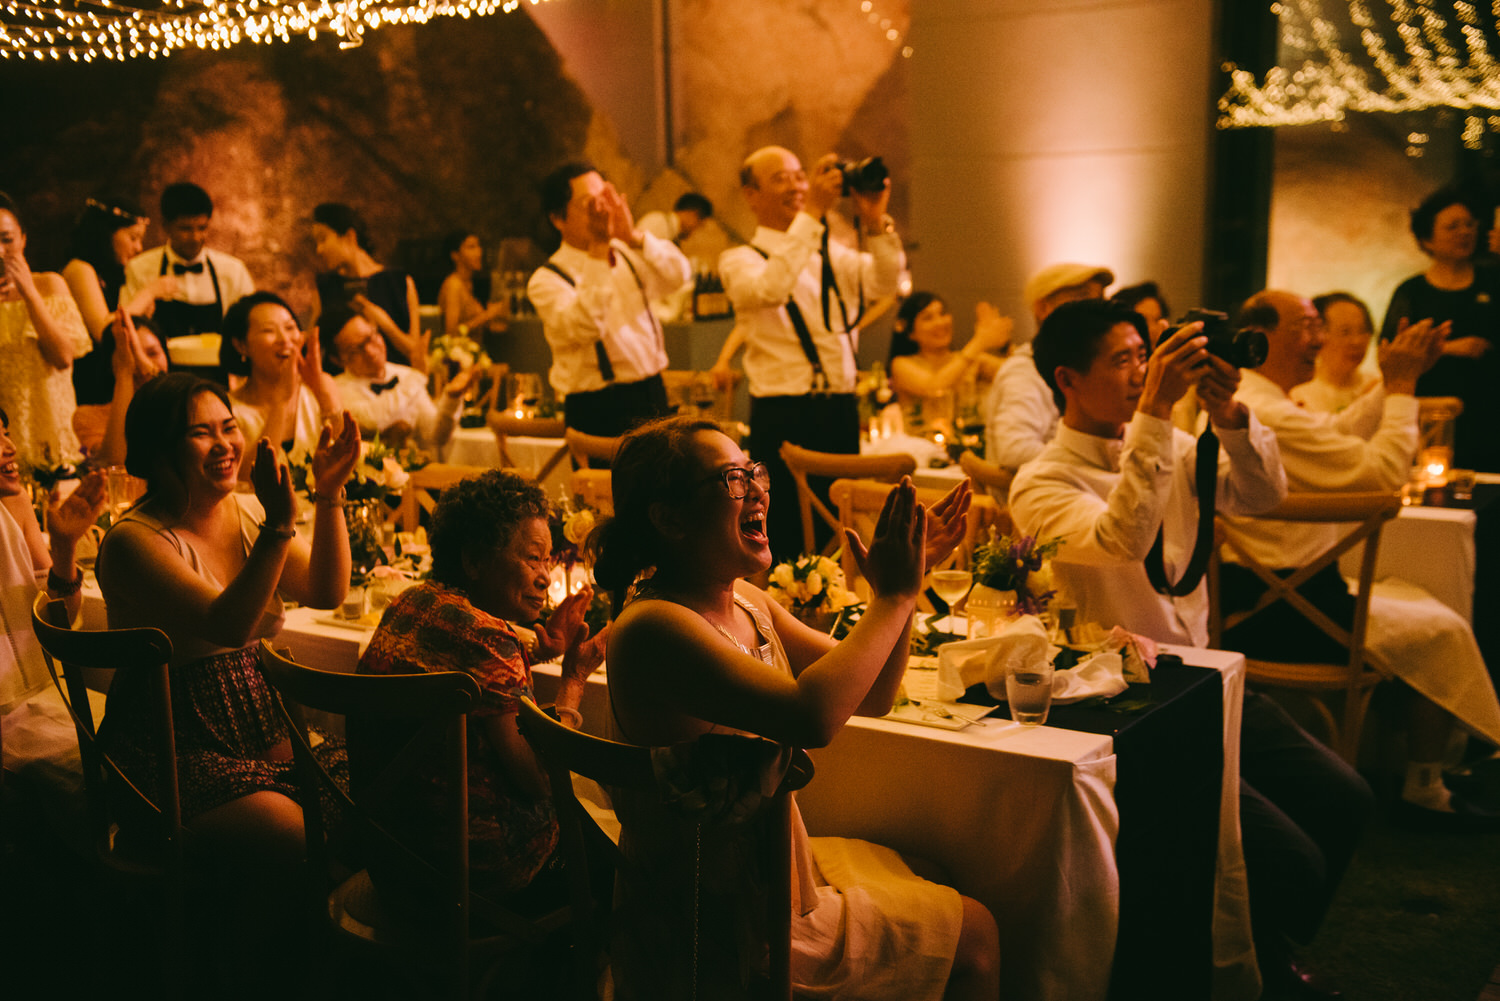 phuket wedding-diktatphotography-alex&andy wedding-148